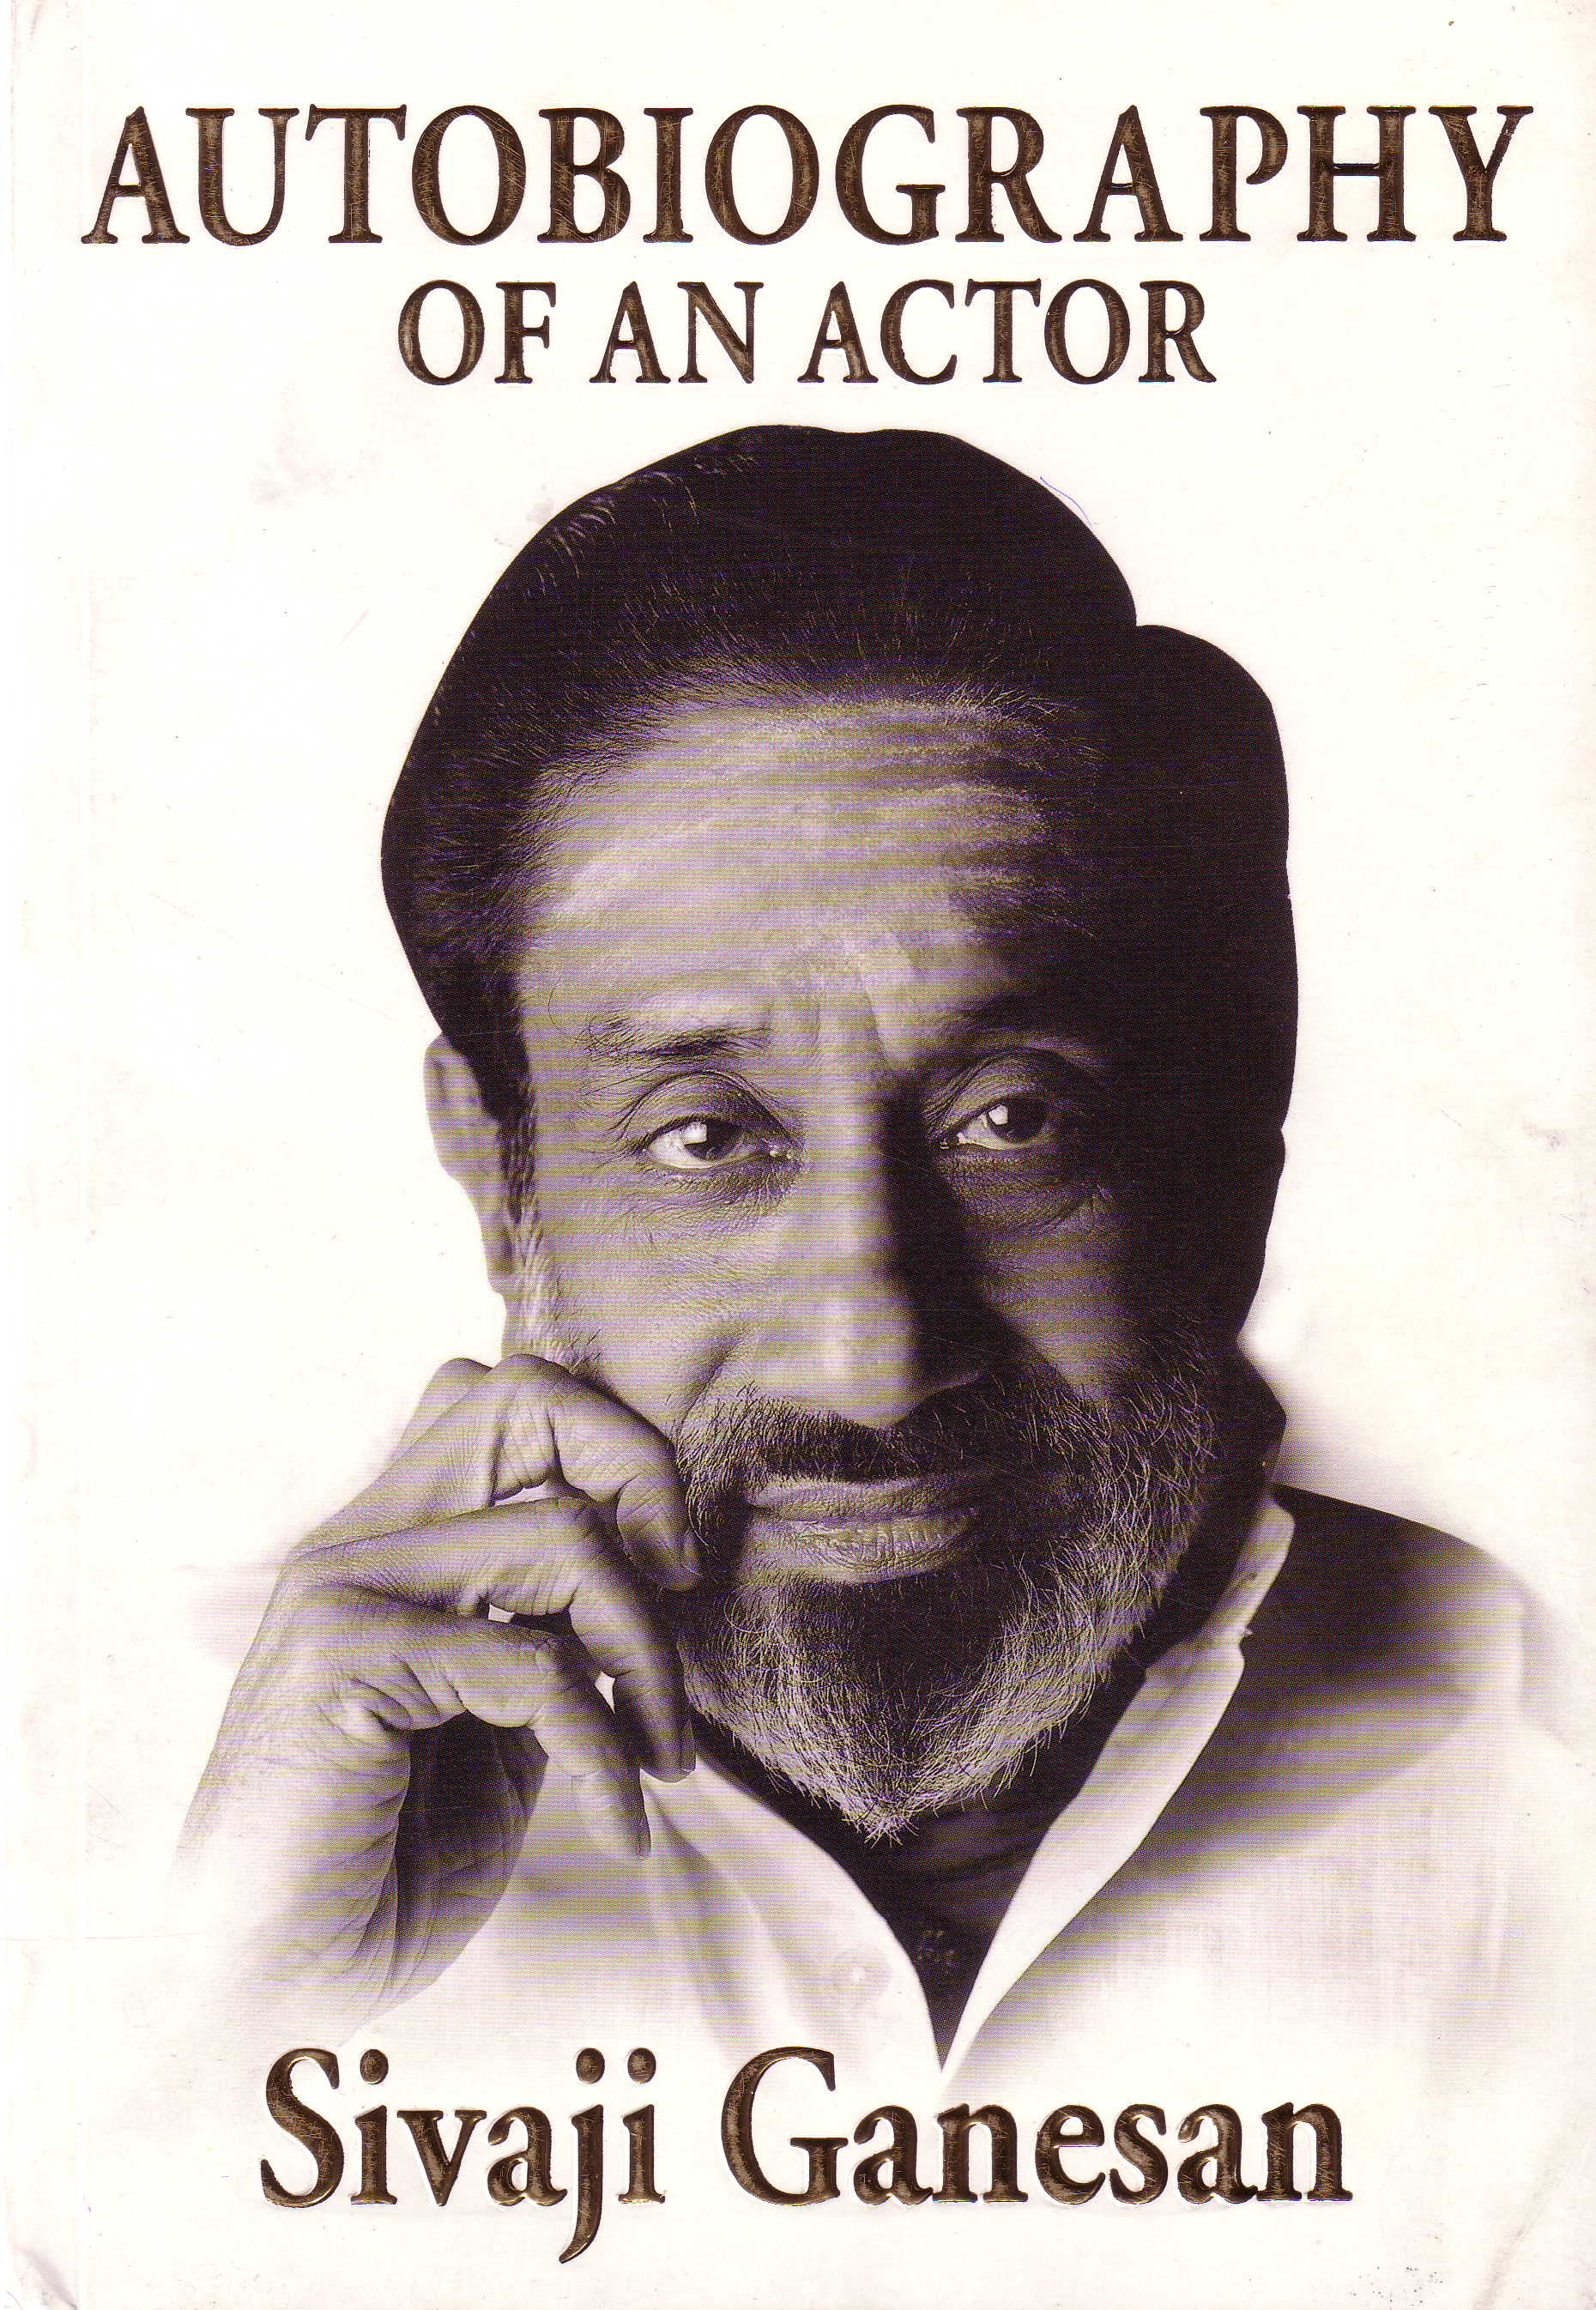 Sivaji Ganesan autobiography front cover